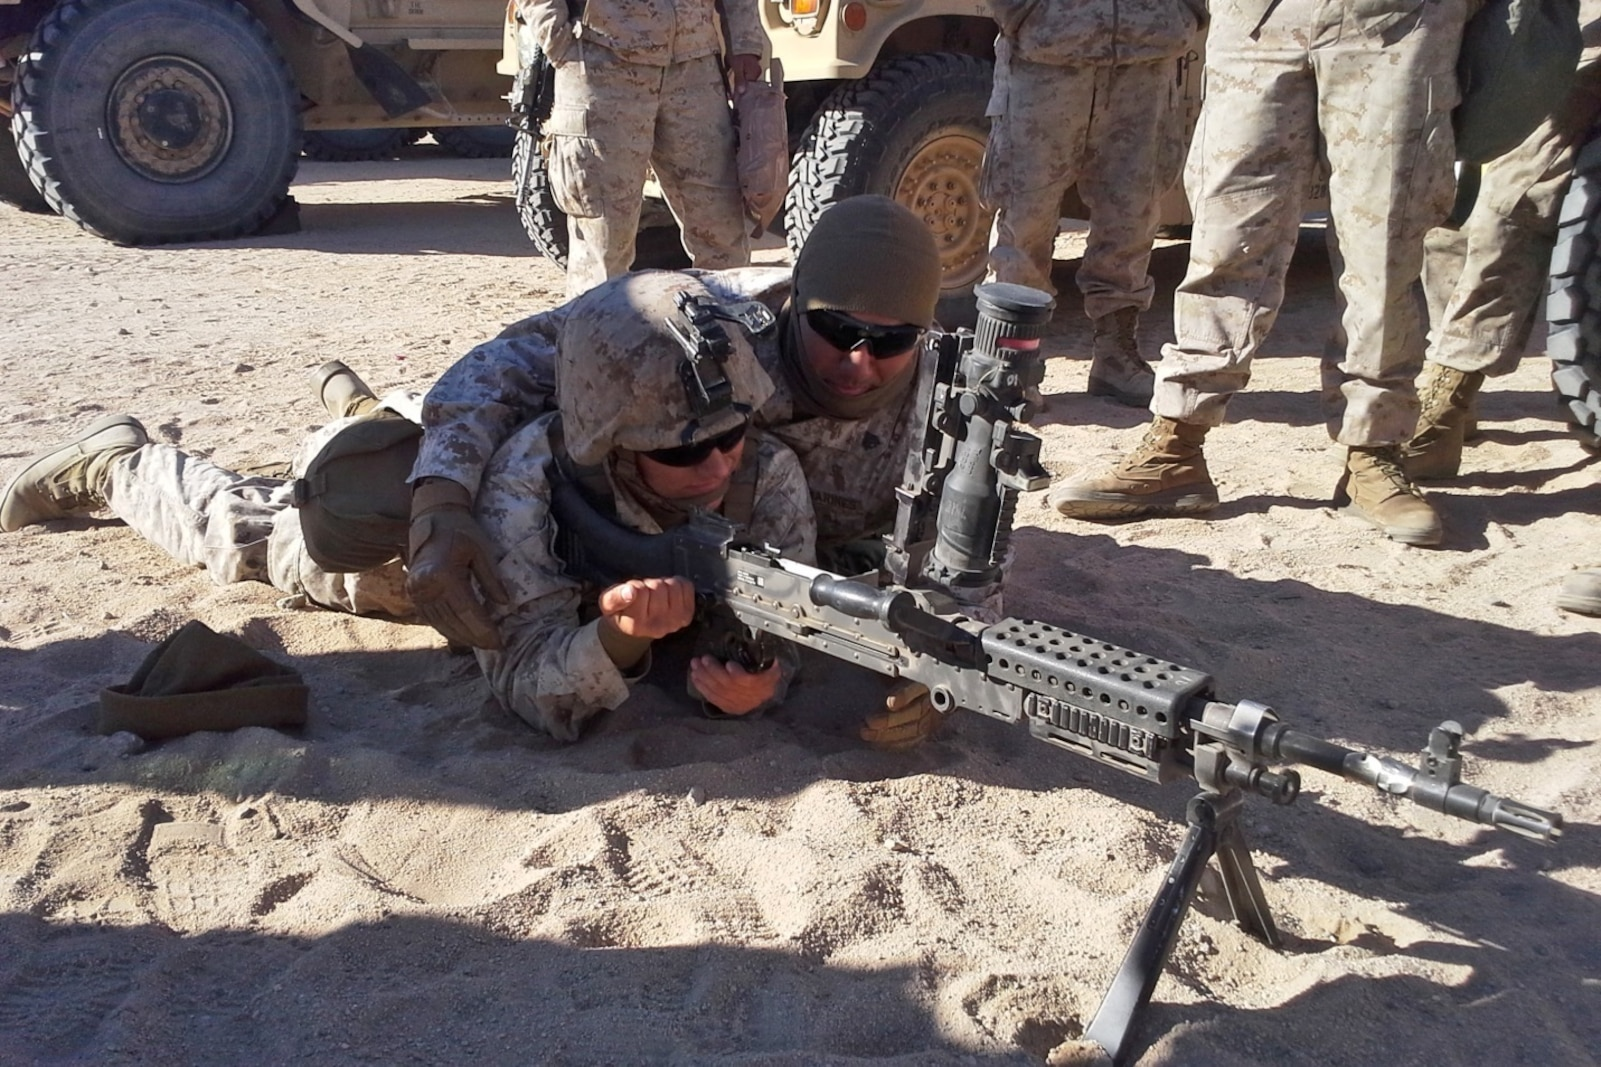 Lance Cpl. Dustin Luse, left, demonstrates how to operate the M240B with the help of Sgt. Joseph Lopez, right, both with Motor Transportation Company, Combat Logistics Battalion 5, Combat Logistics Regiment 1, 1st Marine Logistics Group, aboard Marine Air Ground Combat Center Twentynine Palms, Calif., Dec. 11, 2013. Luse, of Vidor, Texas, recently supported Exercise Steel Knight 2014. SK14 is an annual exercise designed to prepare the 1st Marine Division for deployment.